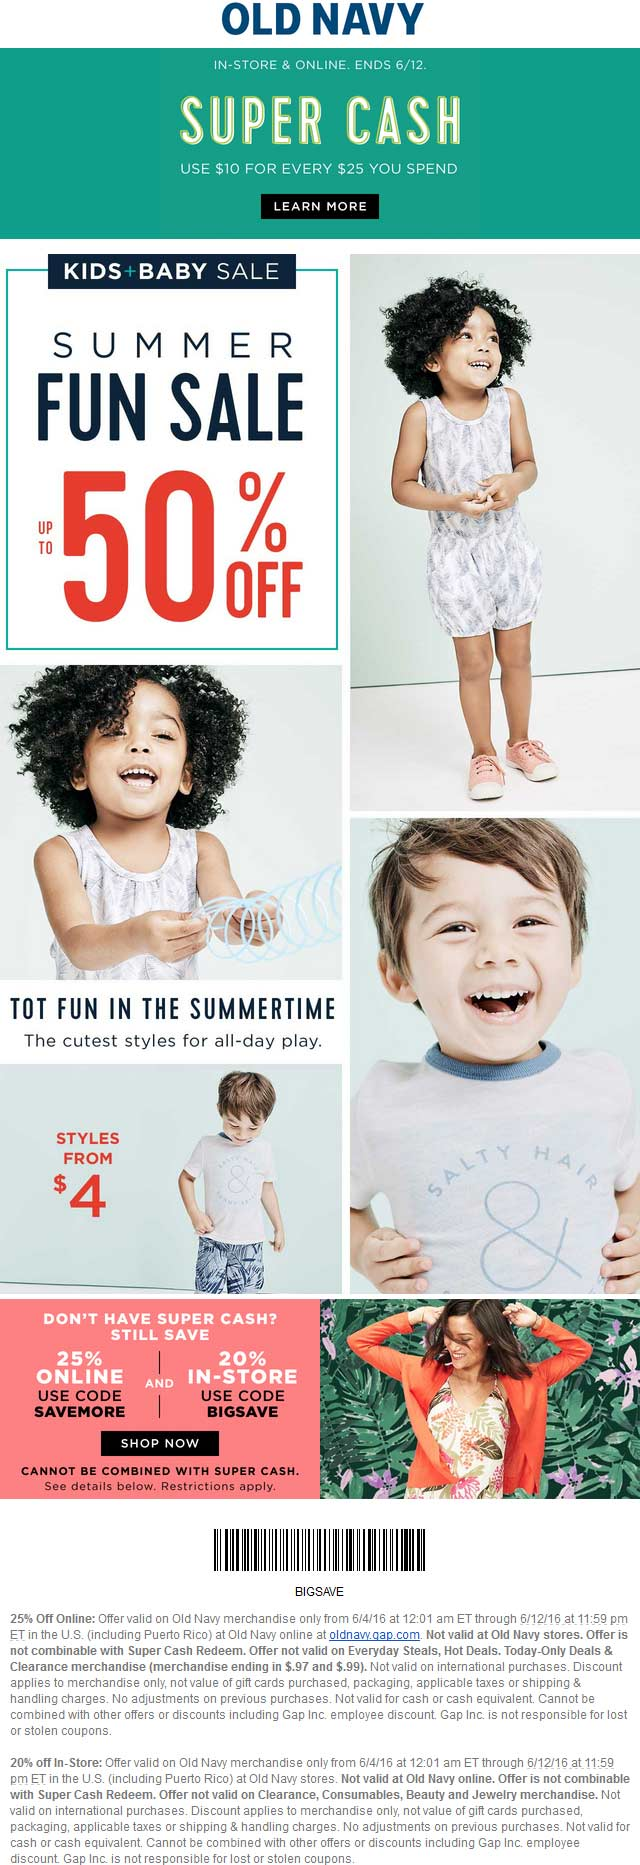 Old Navy Coupon December 2016 20% off at Old Navy, or 25% online via promo code SAVEMORE